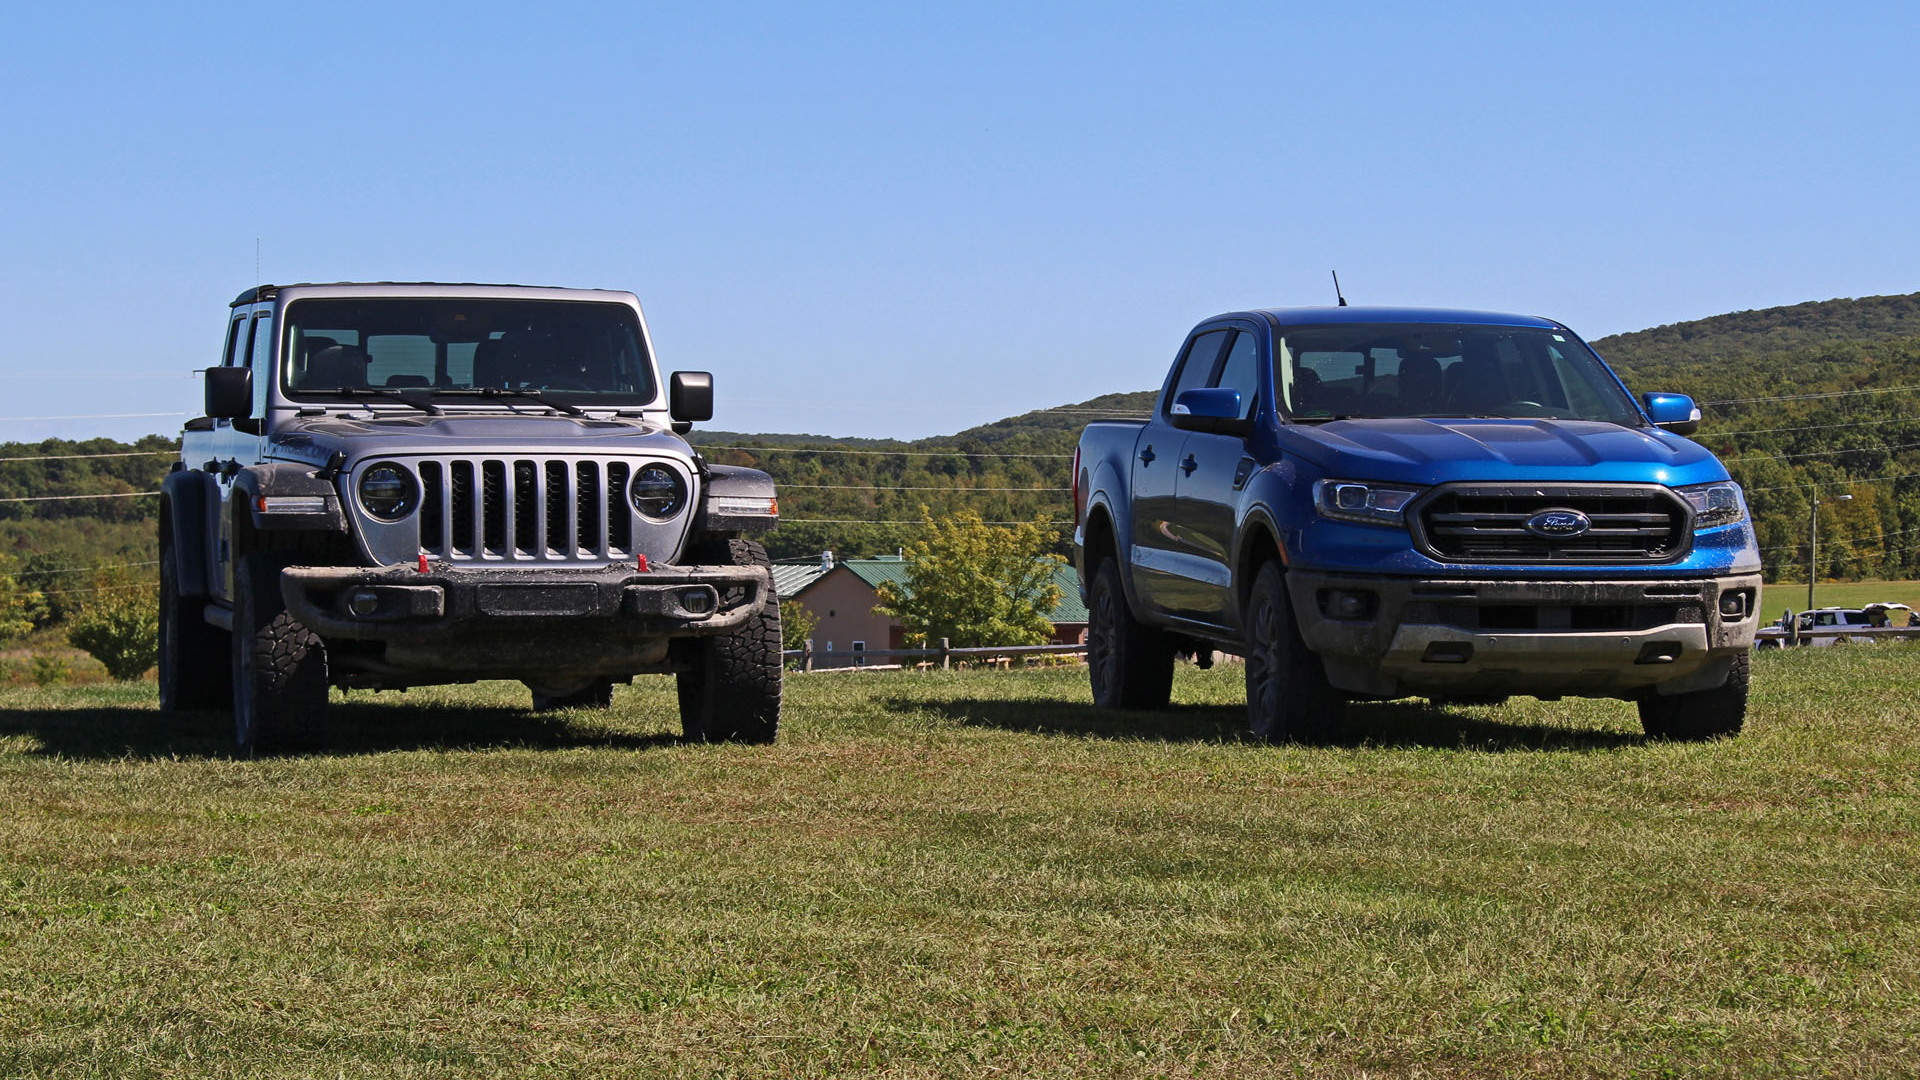 Jeep Gladiator Rubicon and Ford Ranger FX4